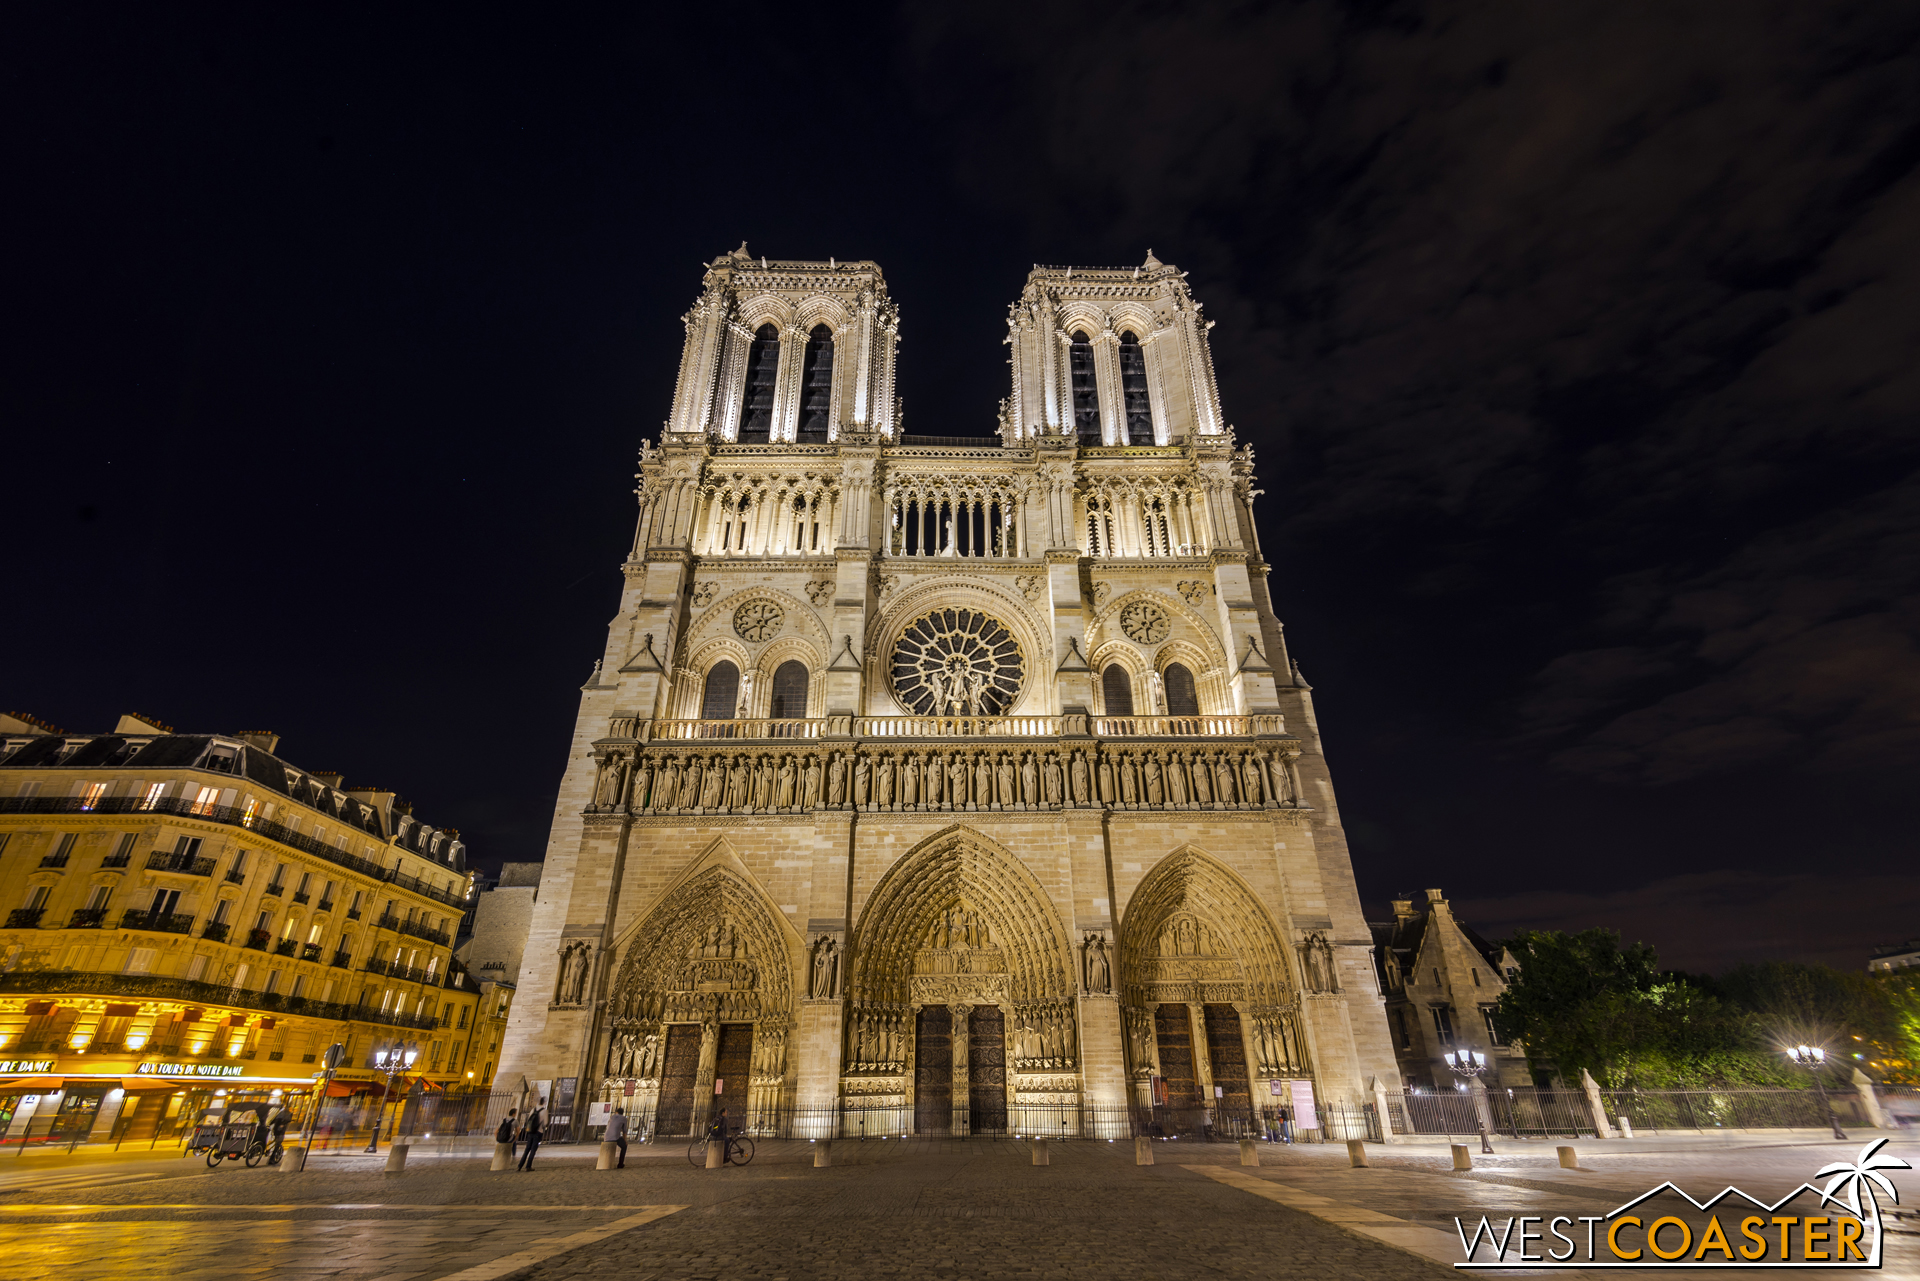 The Cathedral of Notre-Dame in Paris is less packed at night, especially since it is closed, but people still gather around the plaza in front of this icon all throughout the evening.